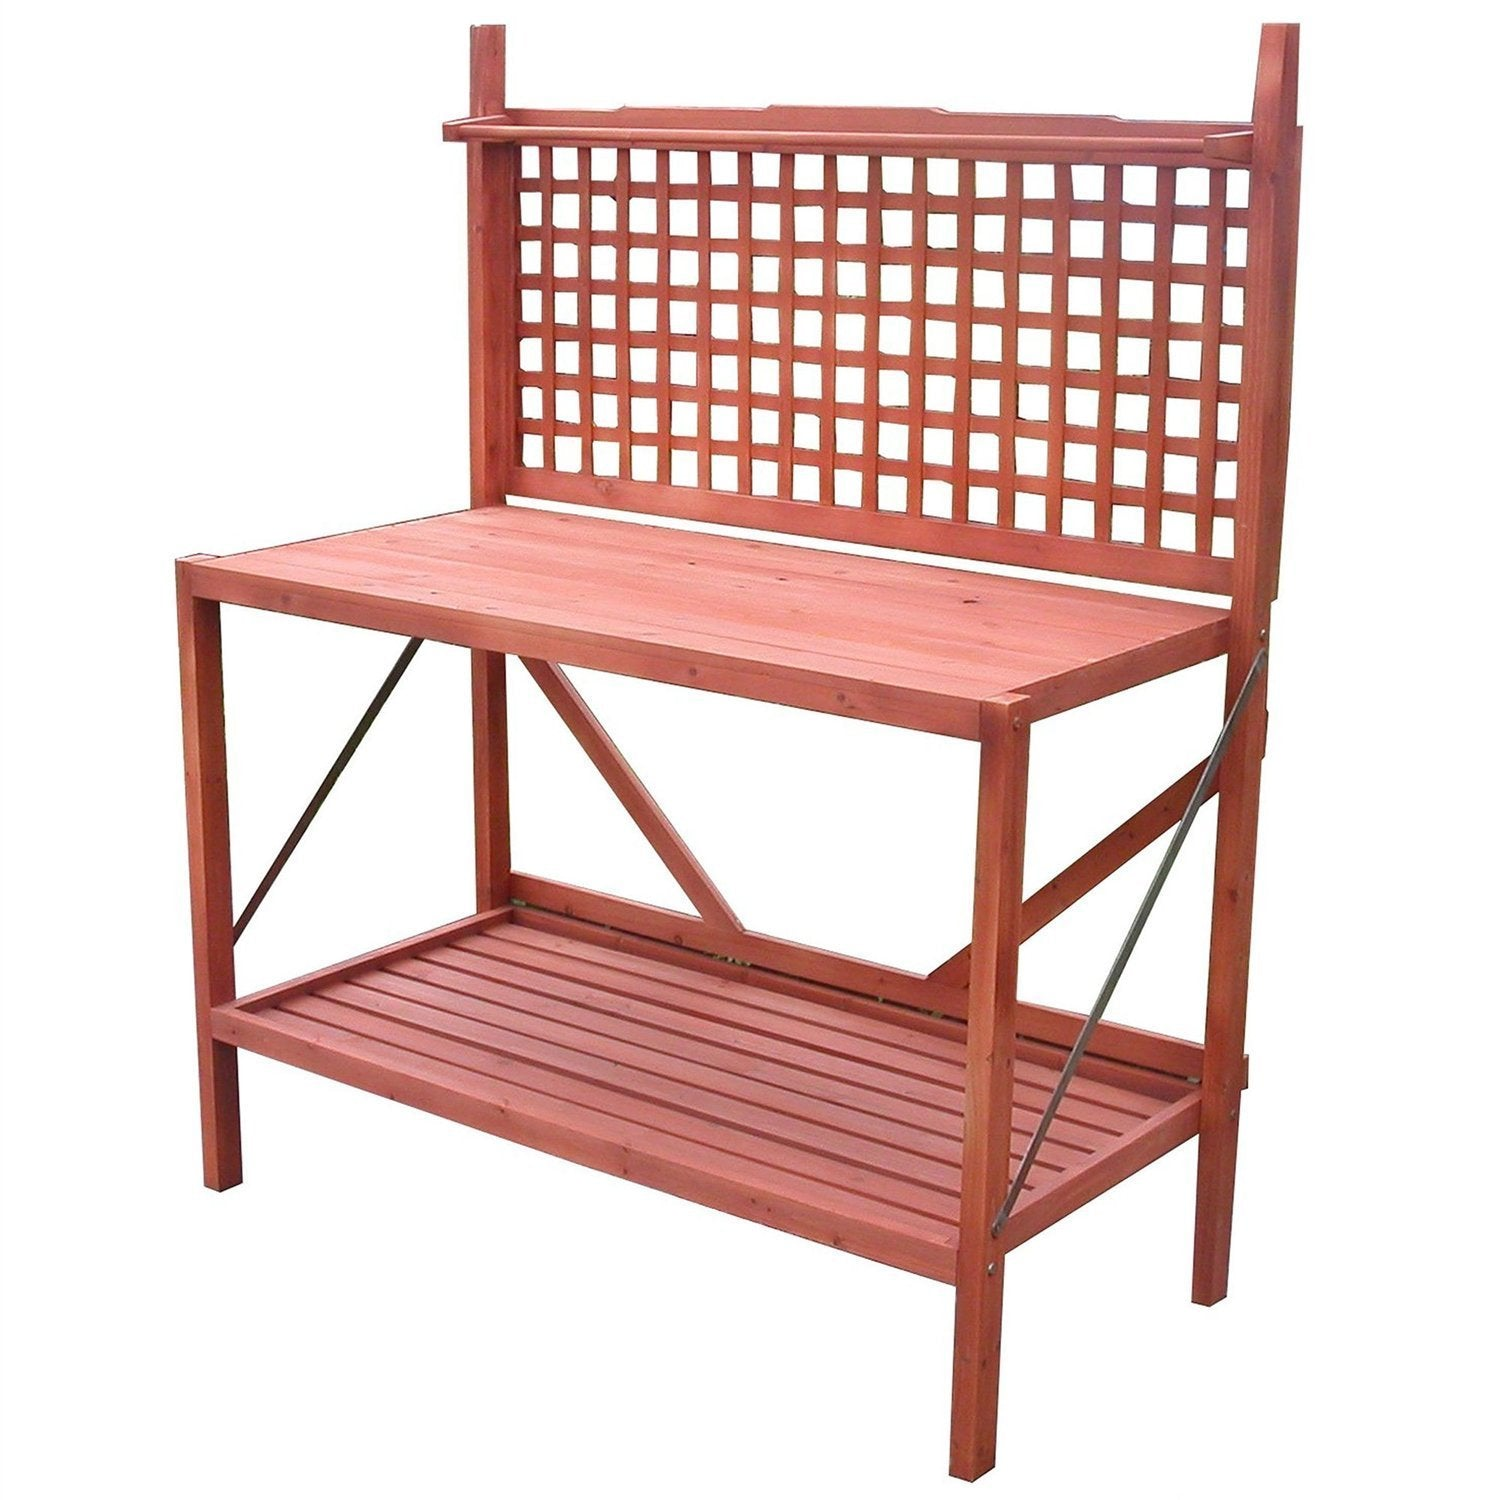 Outdoor Folding Wooden Potting Bench Garden Trellis with Storage Space.